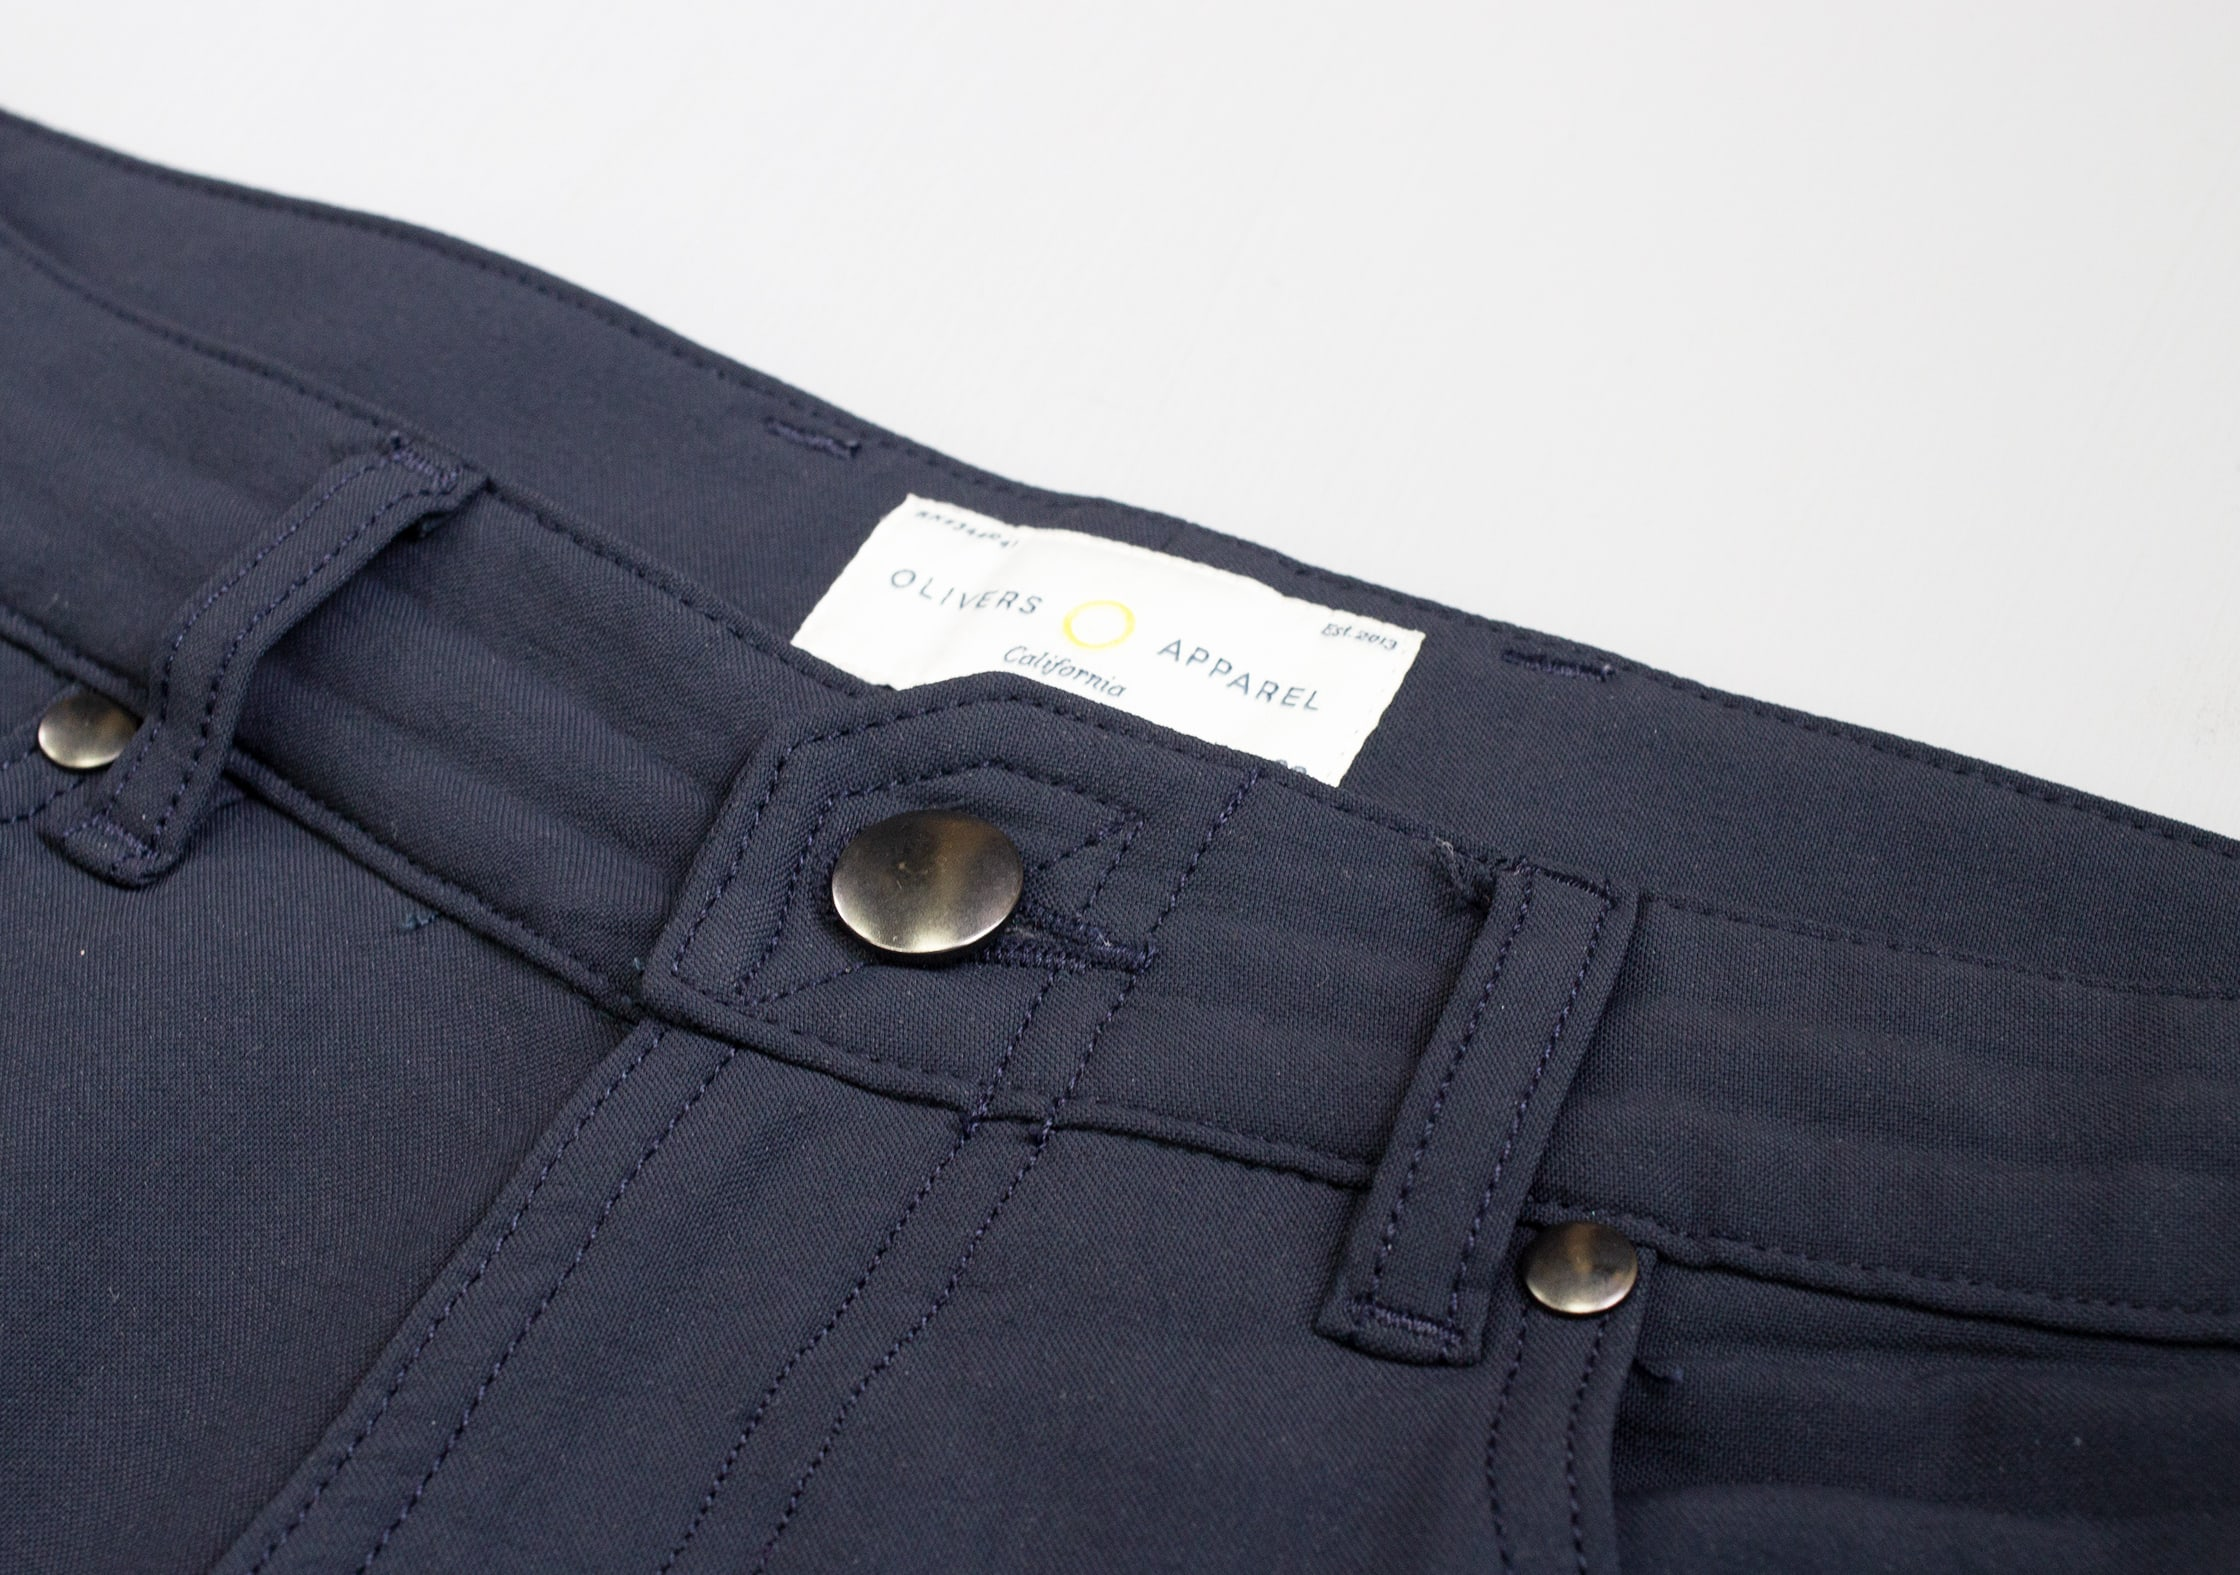 OLIVERS Passage Pant Rivets & Button